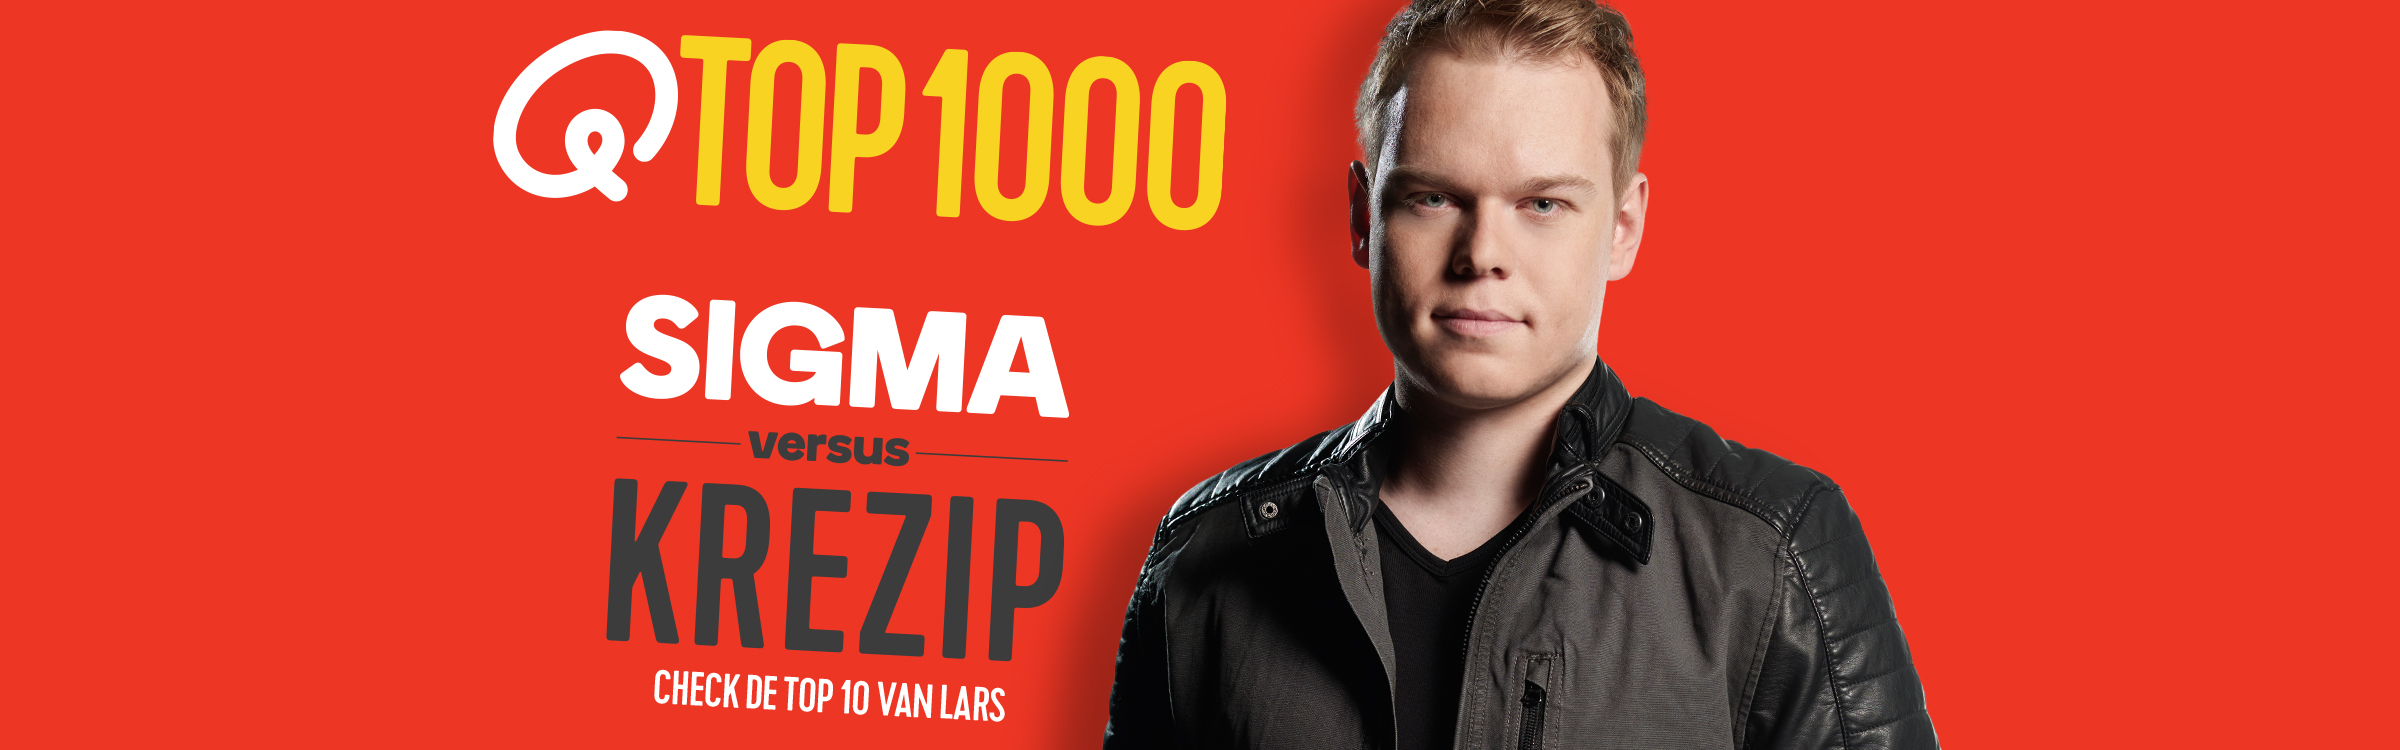 Qmusic actionheader top1000 djs lars